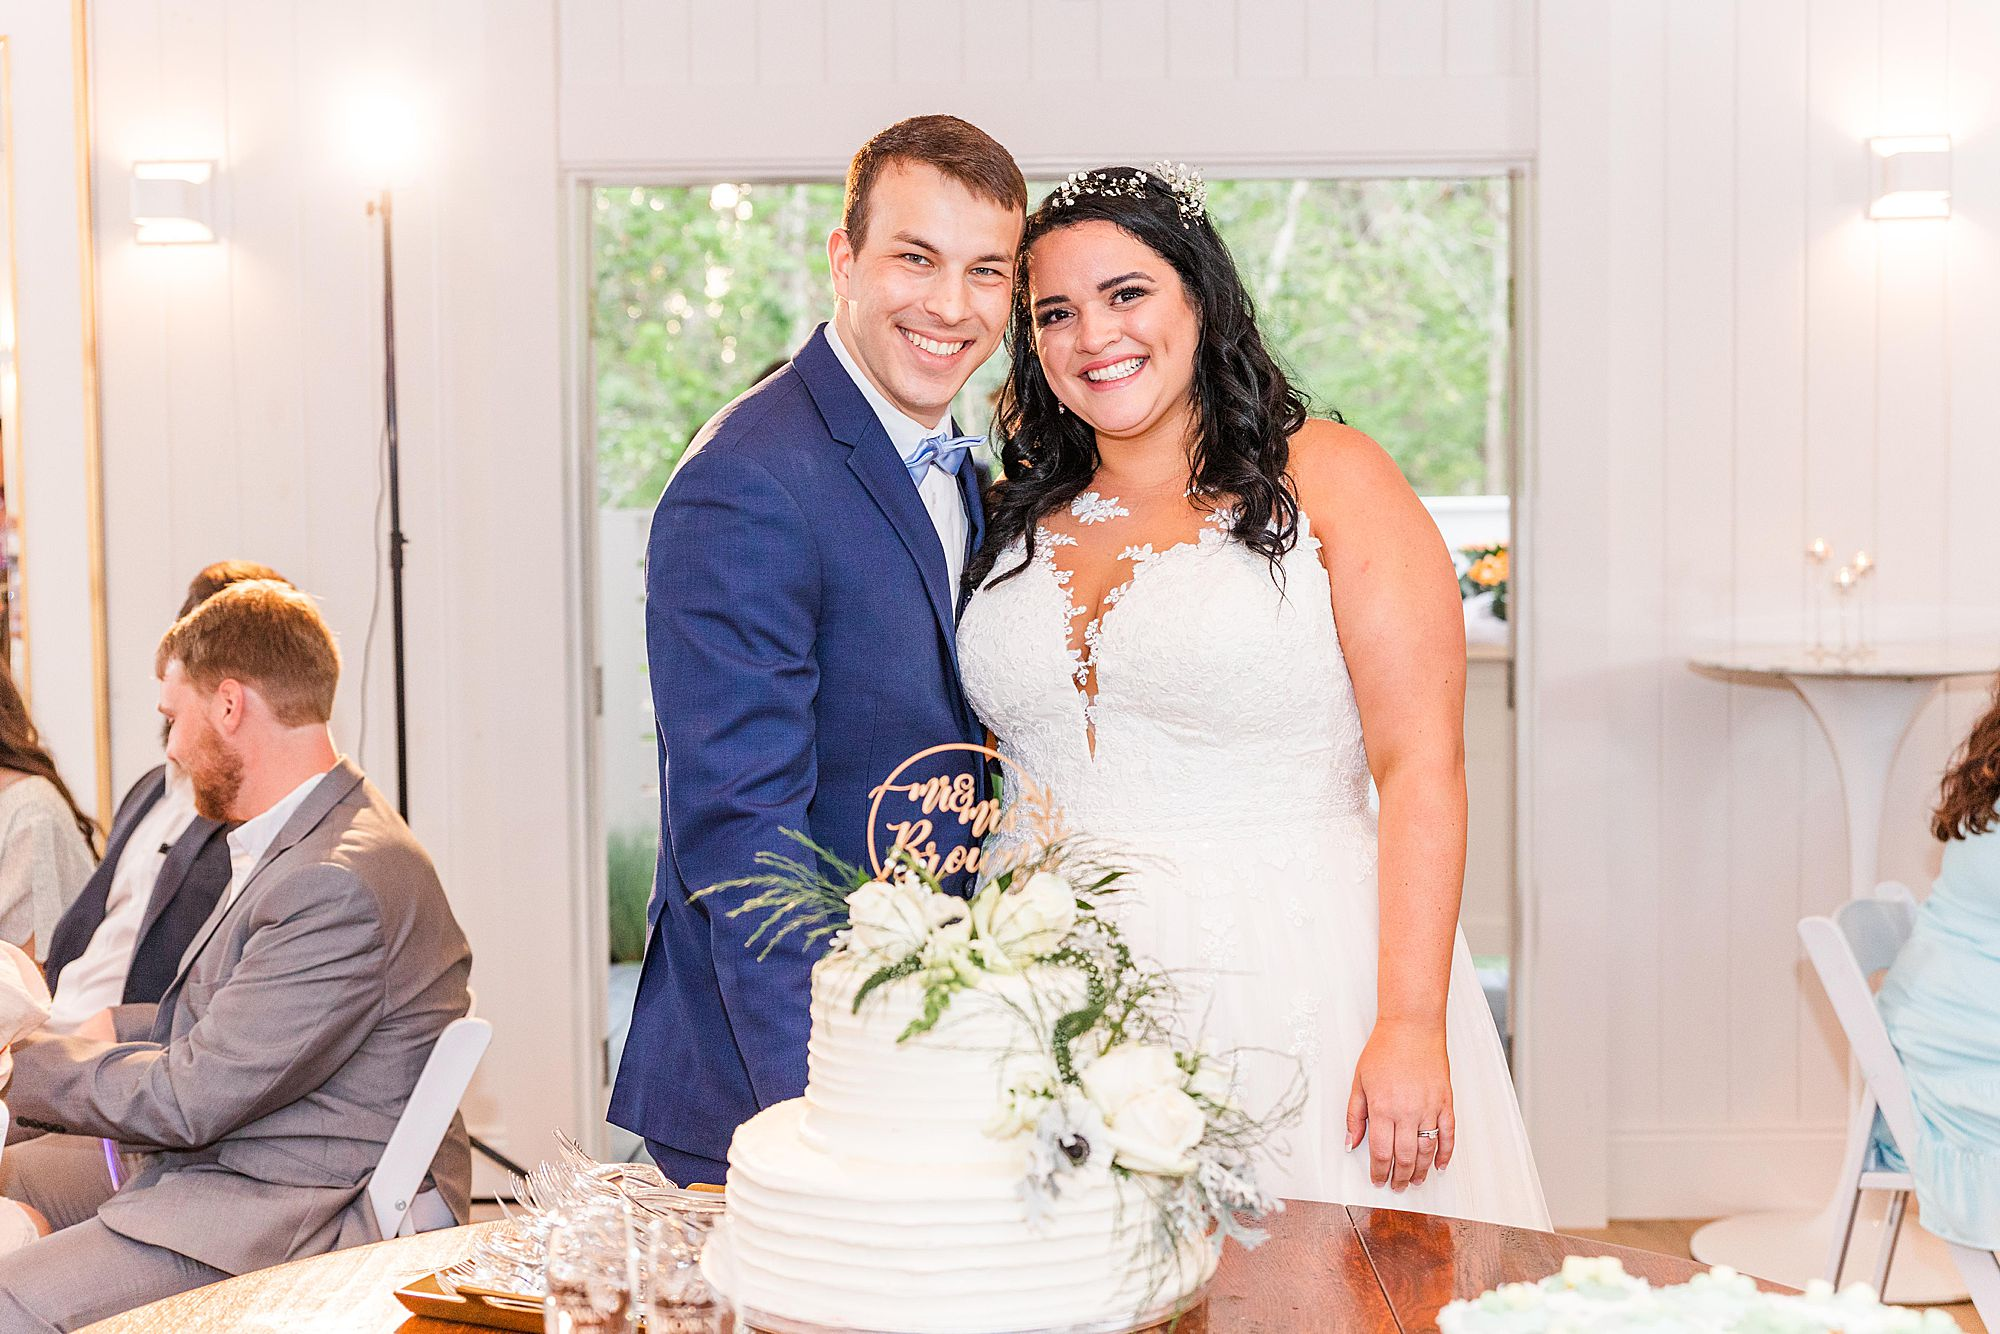 cake cutting portrait of bride and groom